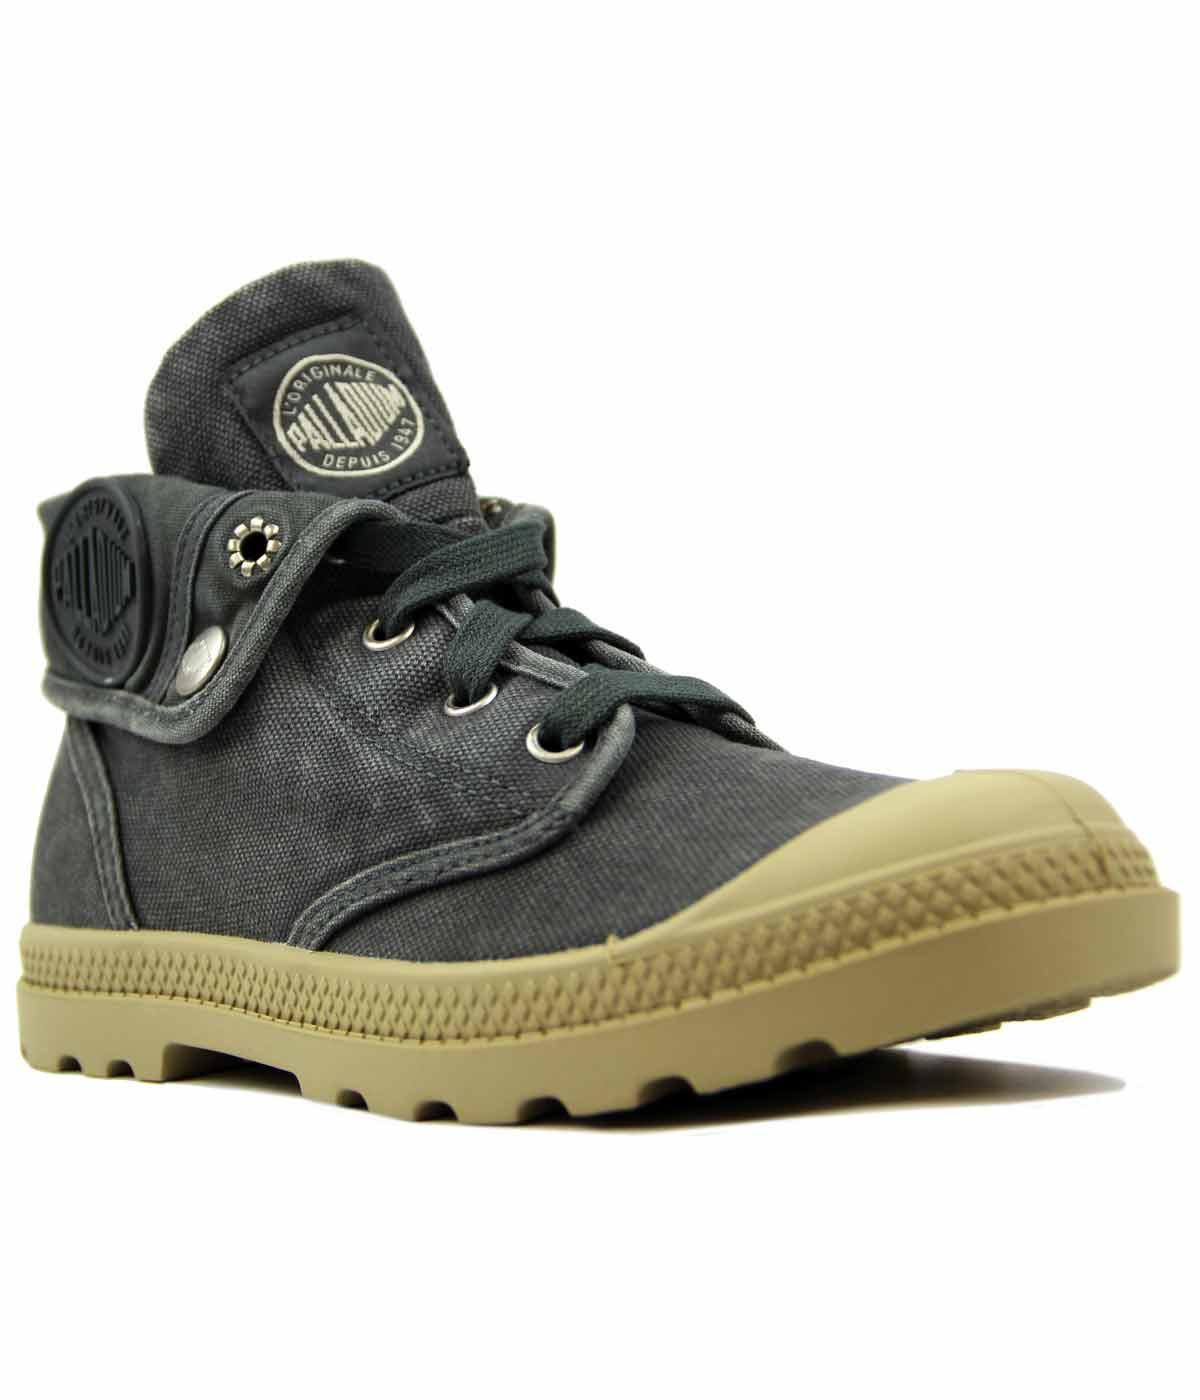 Baggy Low LP PALLADIUM Retro Canvas Boots (T/P)